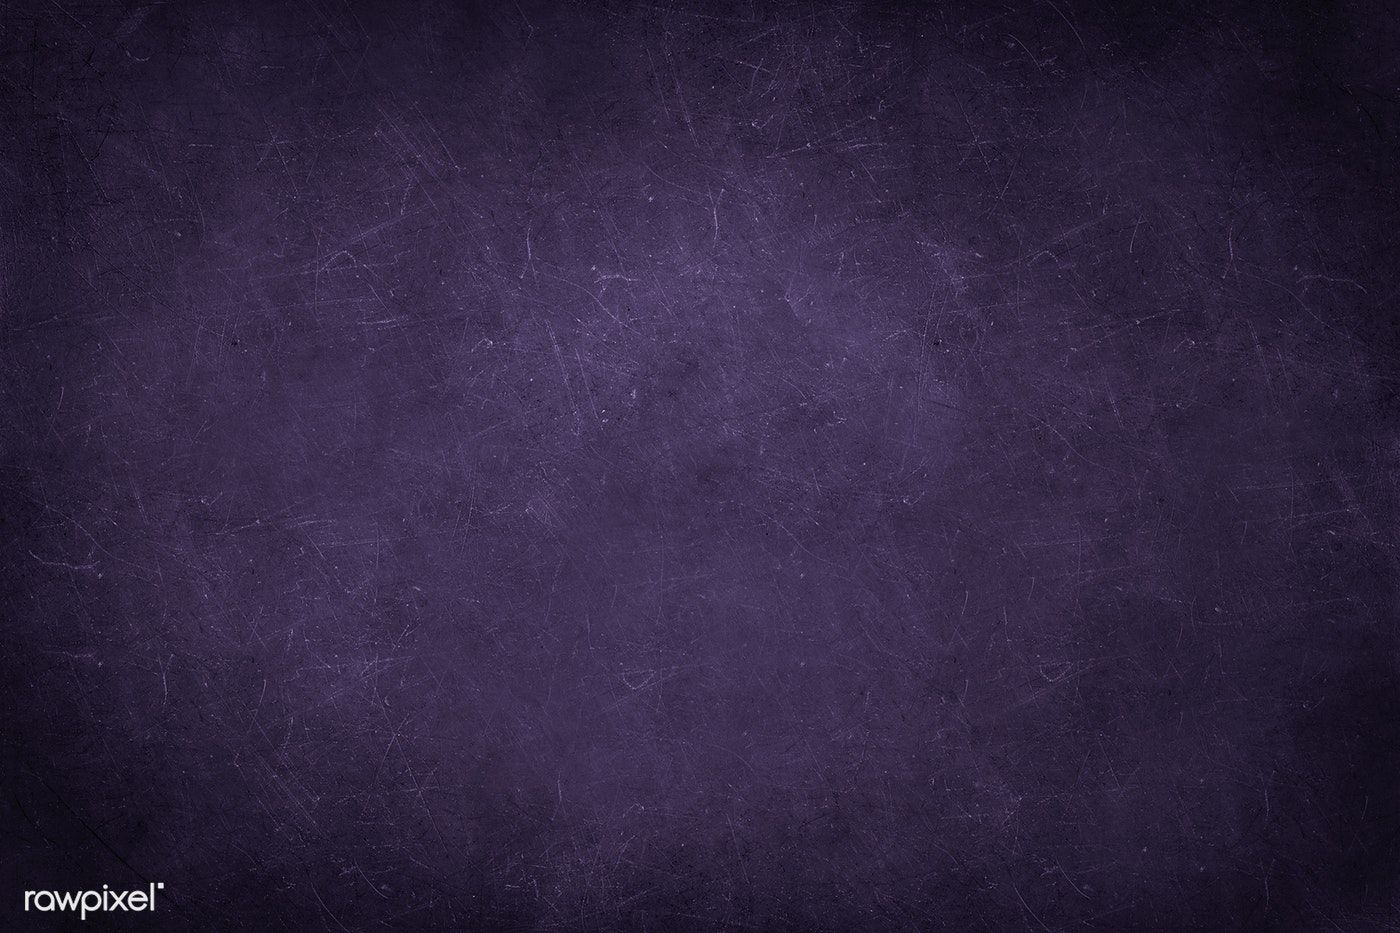 Pin By Amanda Regan On Our First Home In 2020 Concrete Wall Concrete Wall Texture Purple Wall Paint